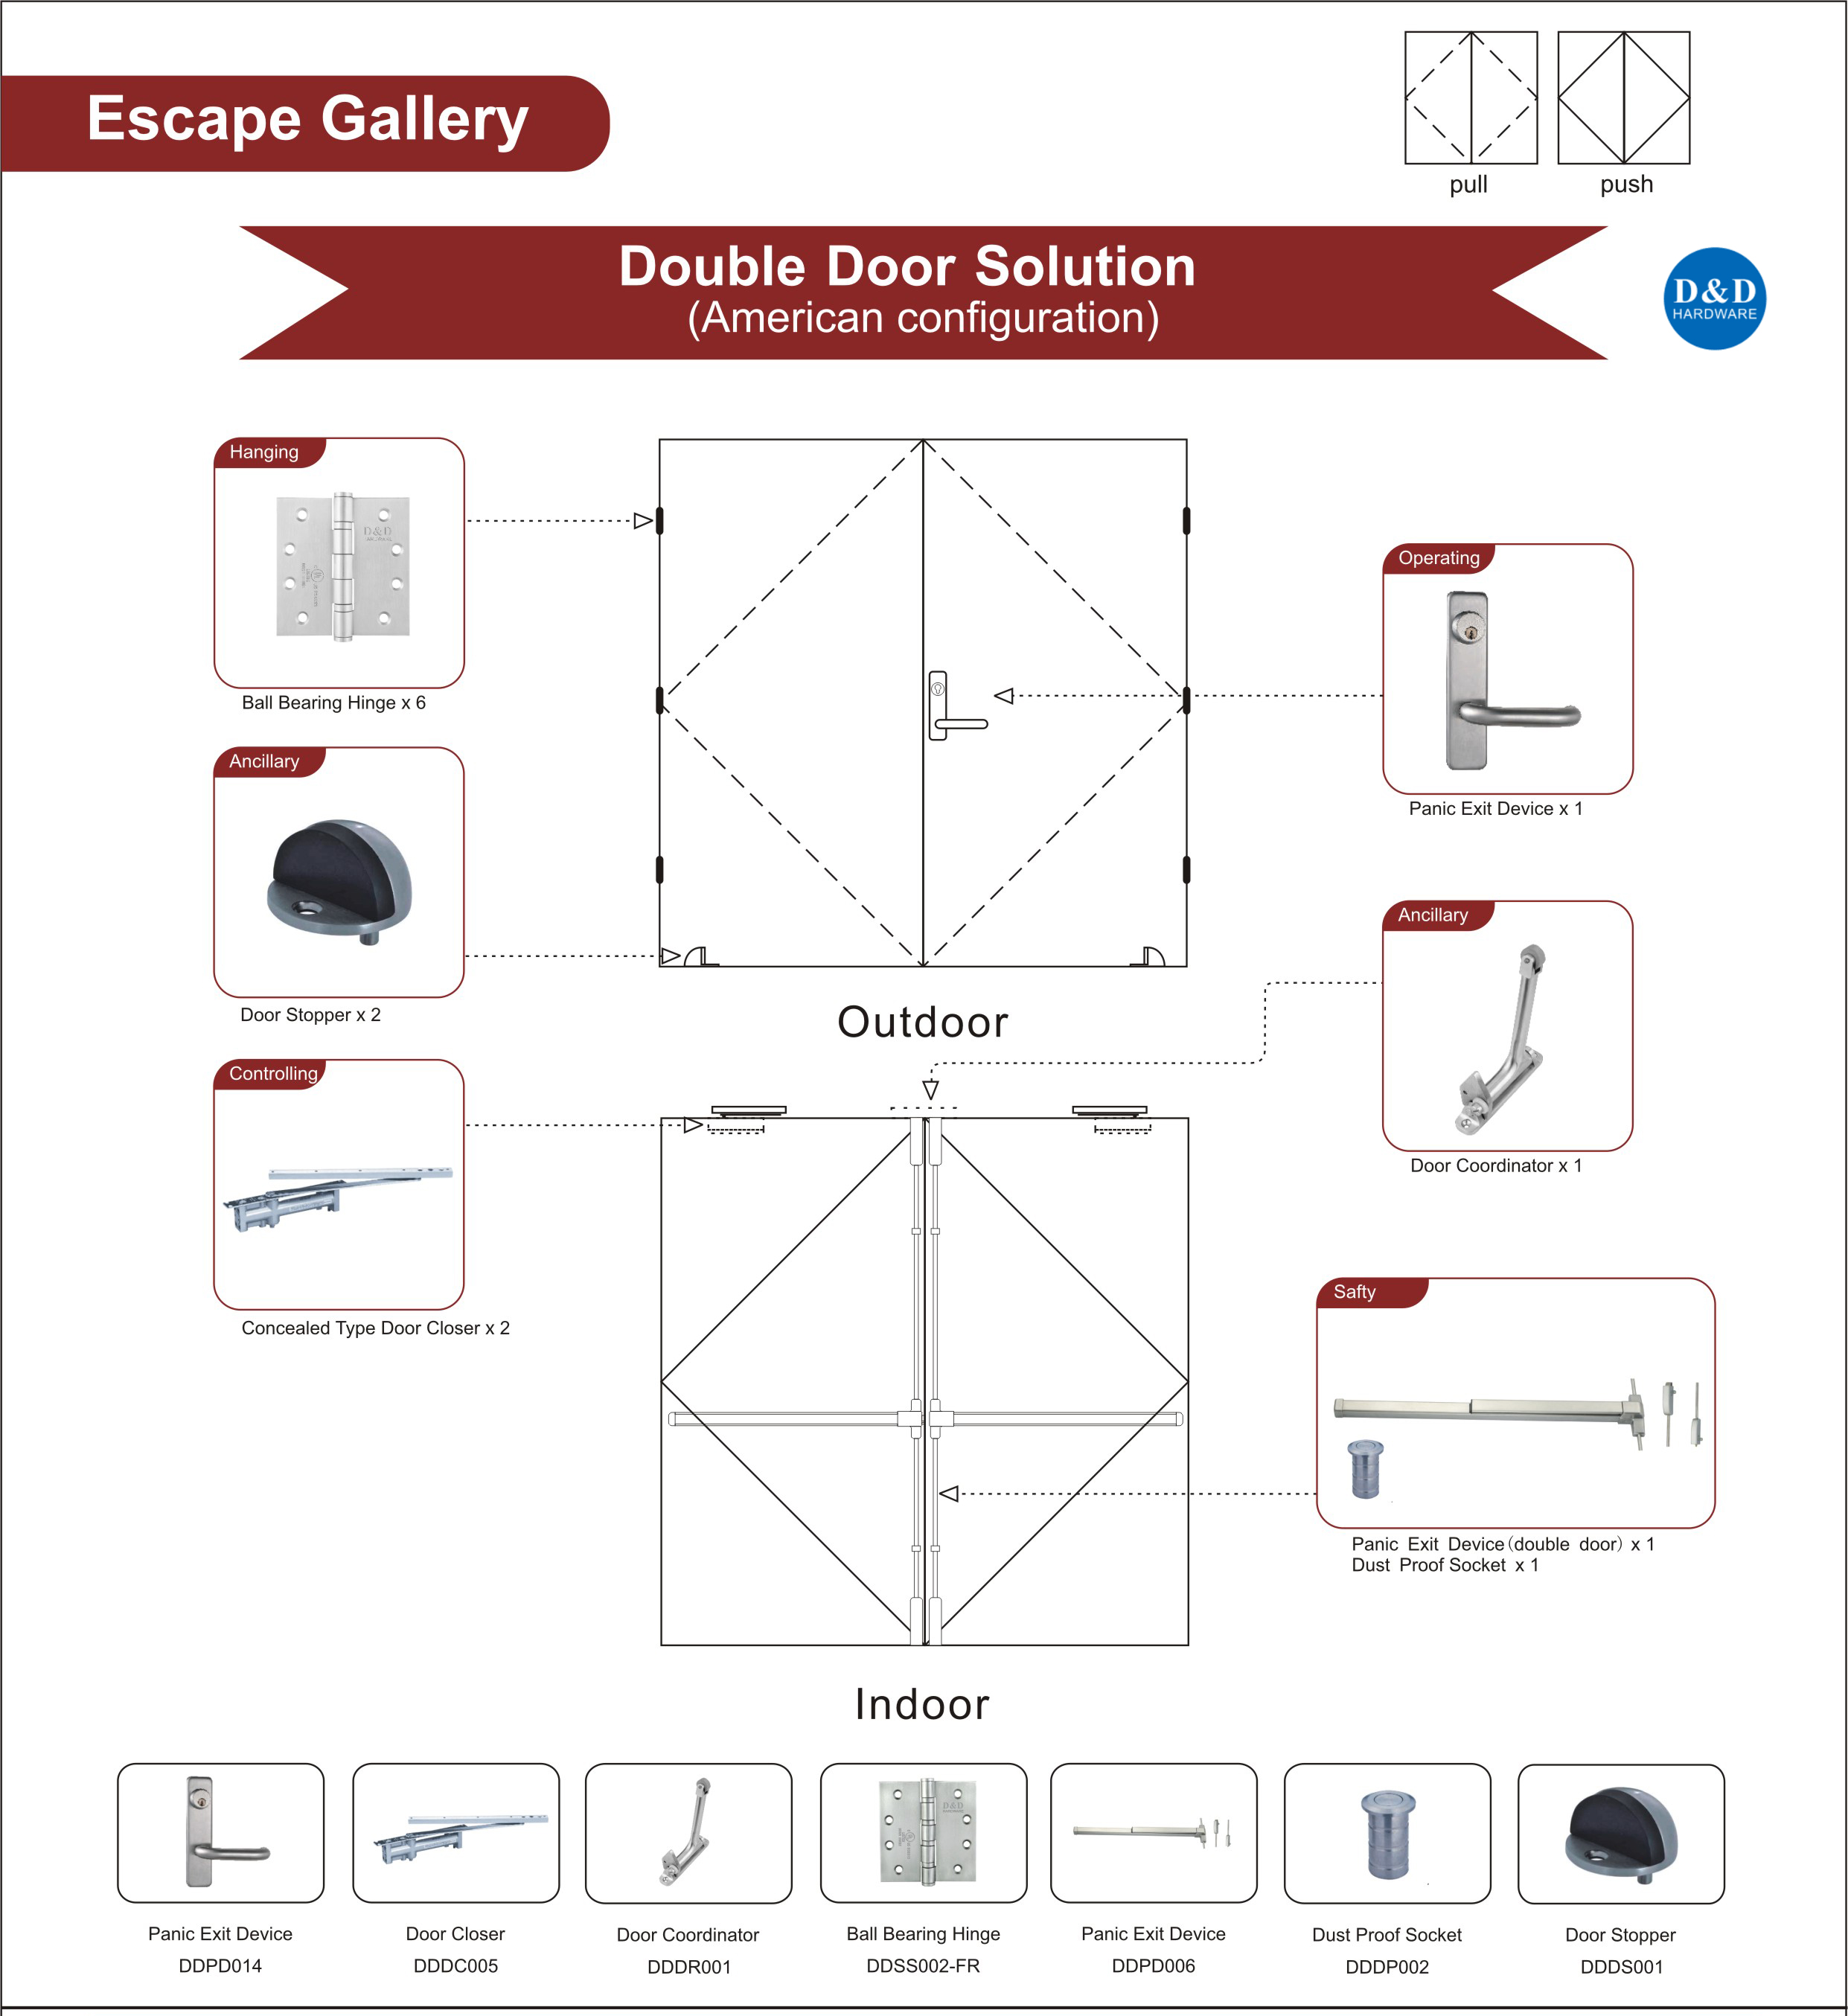 Fire Rated Wooden Door Hardware For Escape Gallery Double Door